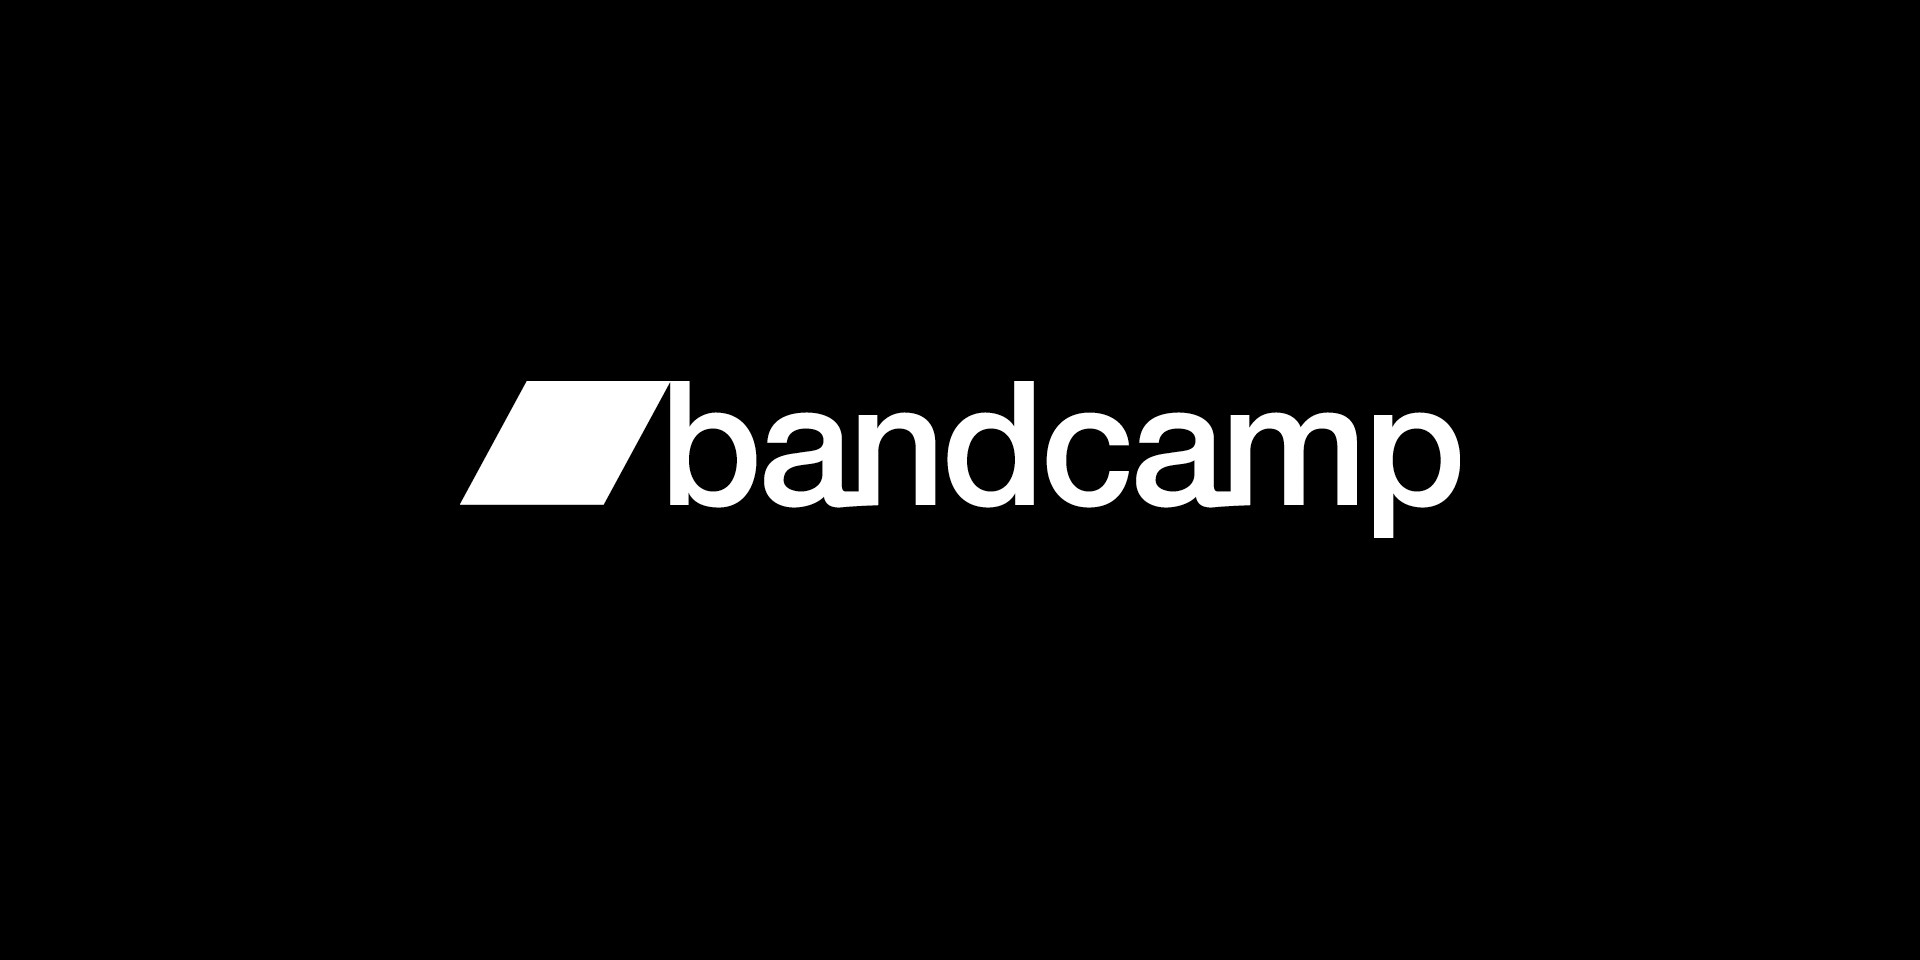 Bandcamp to give all proceeds to artists for 24 hours this Friday